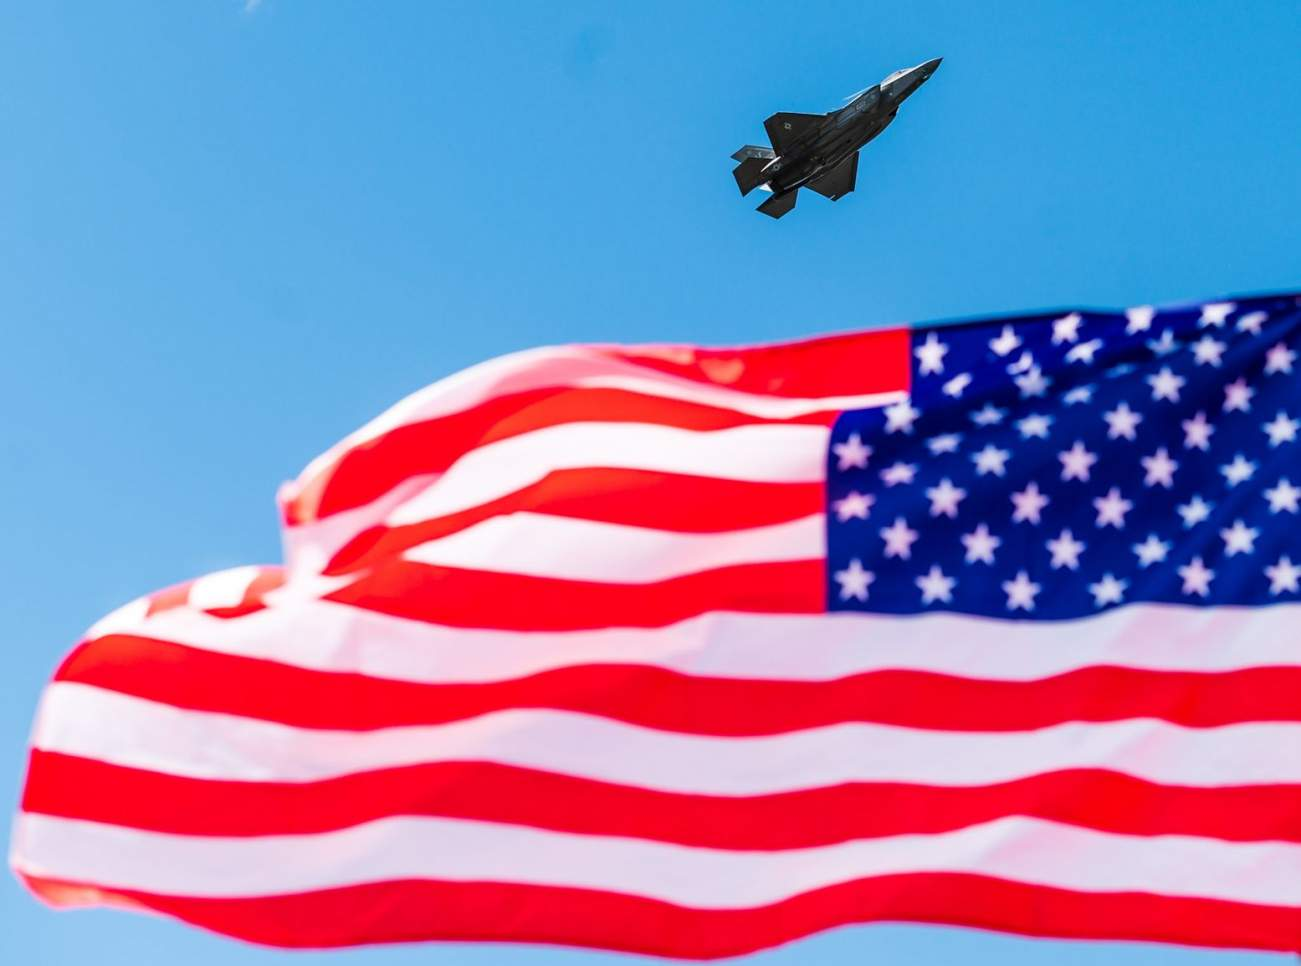 An Air Force Pilot Spilled the Beans on Why American Stealth Fighters Will Never Be Defeated